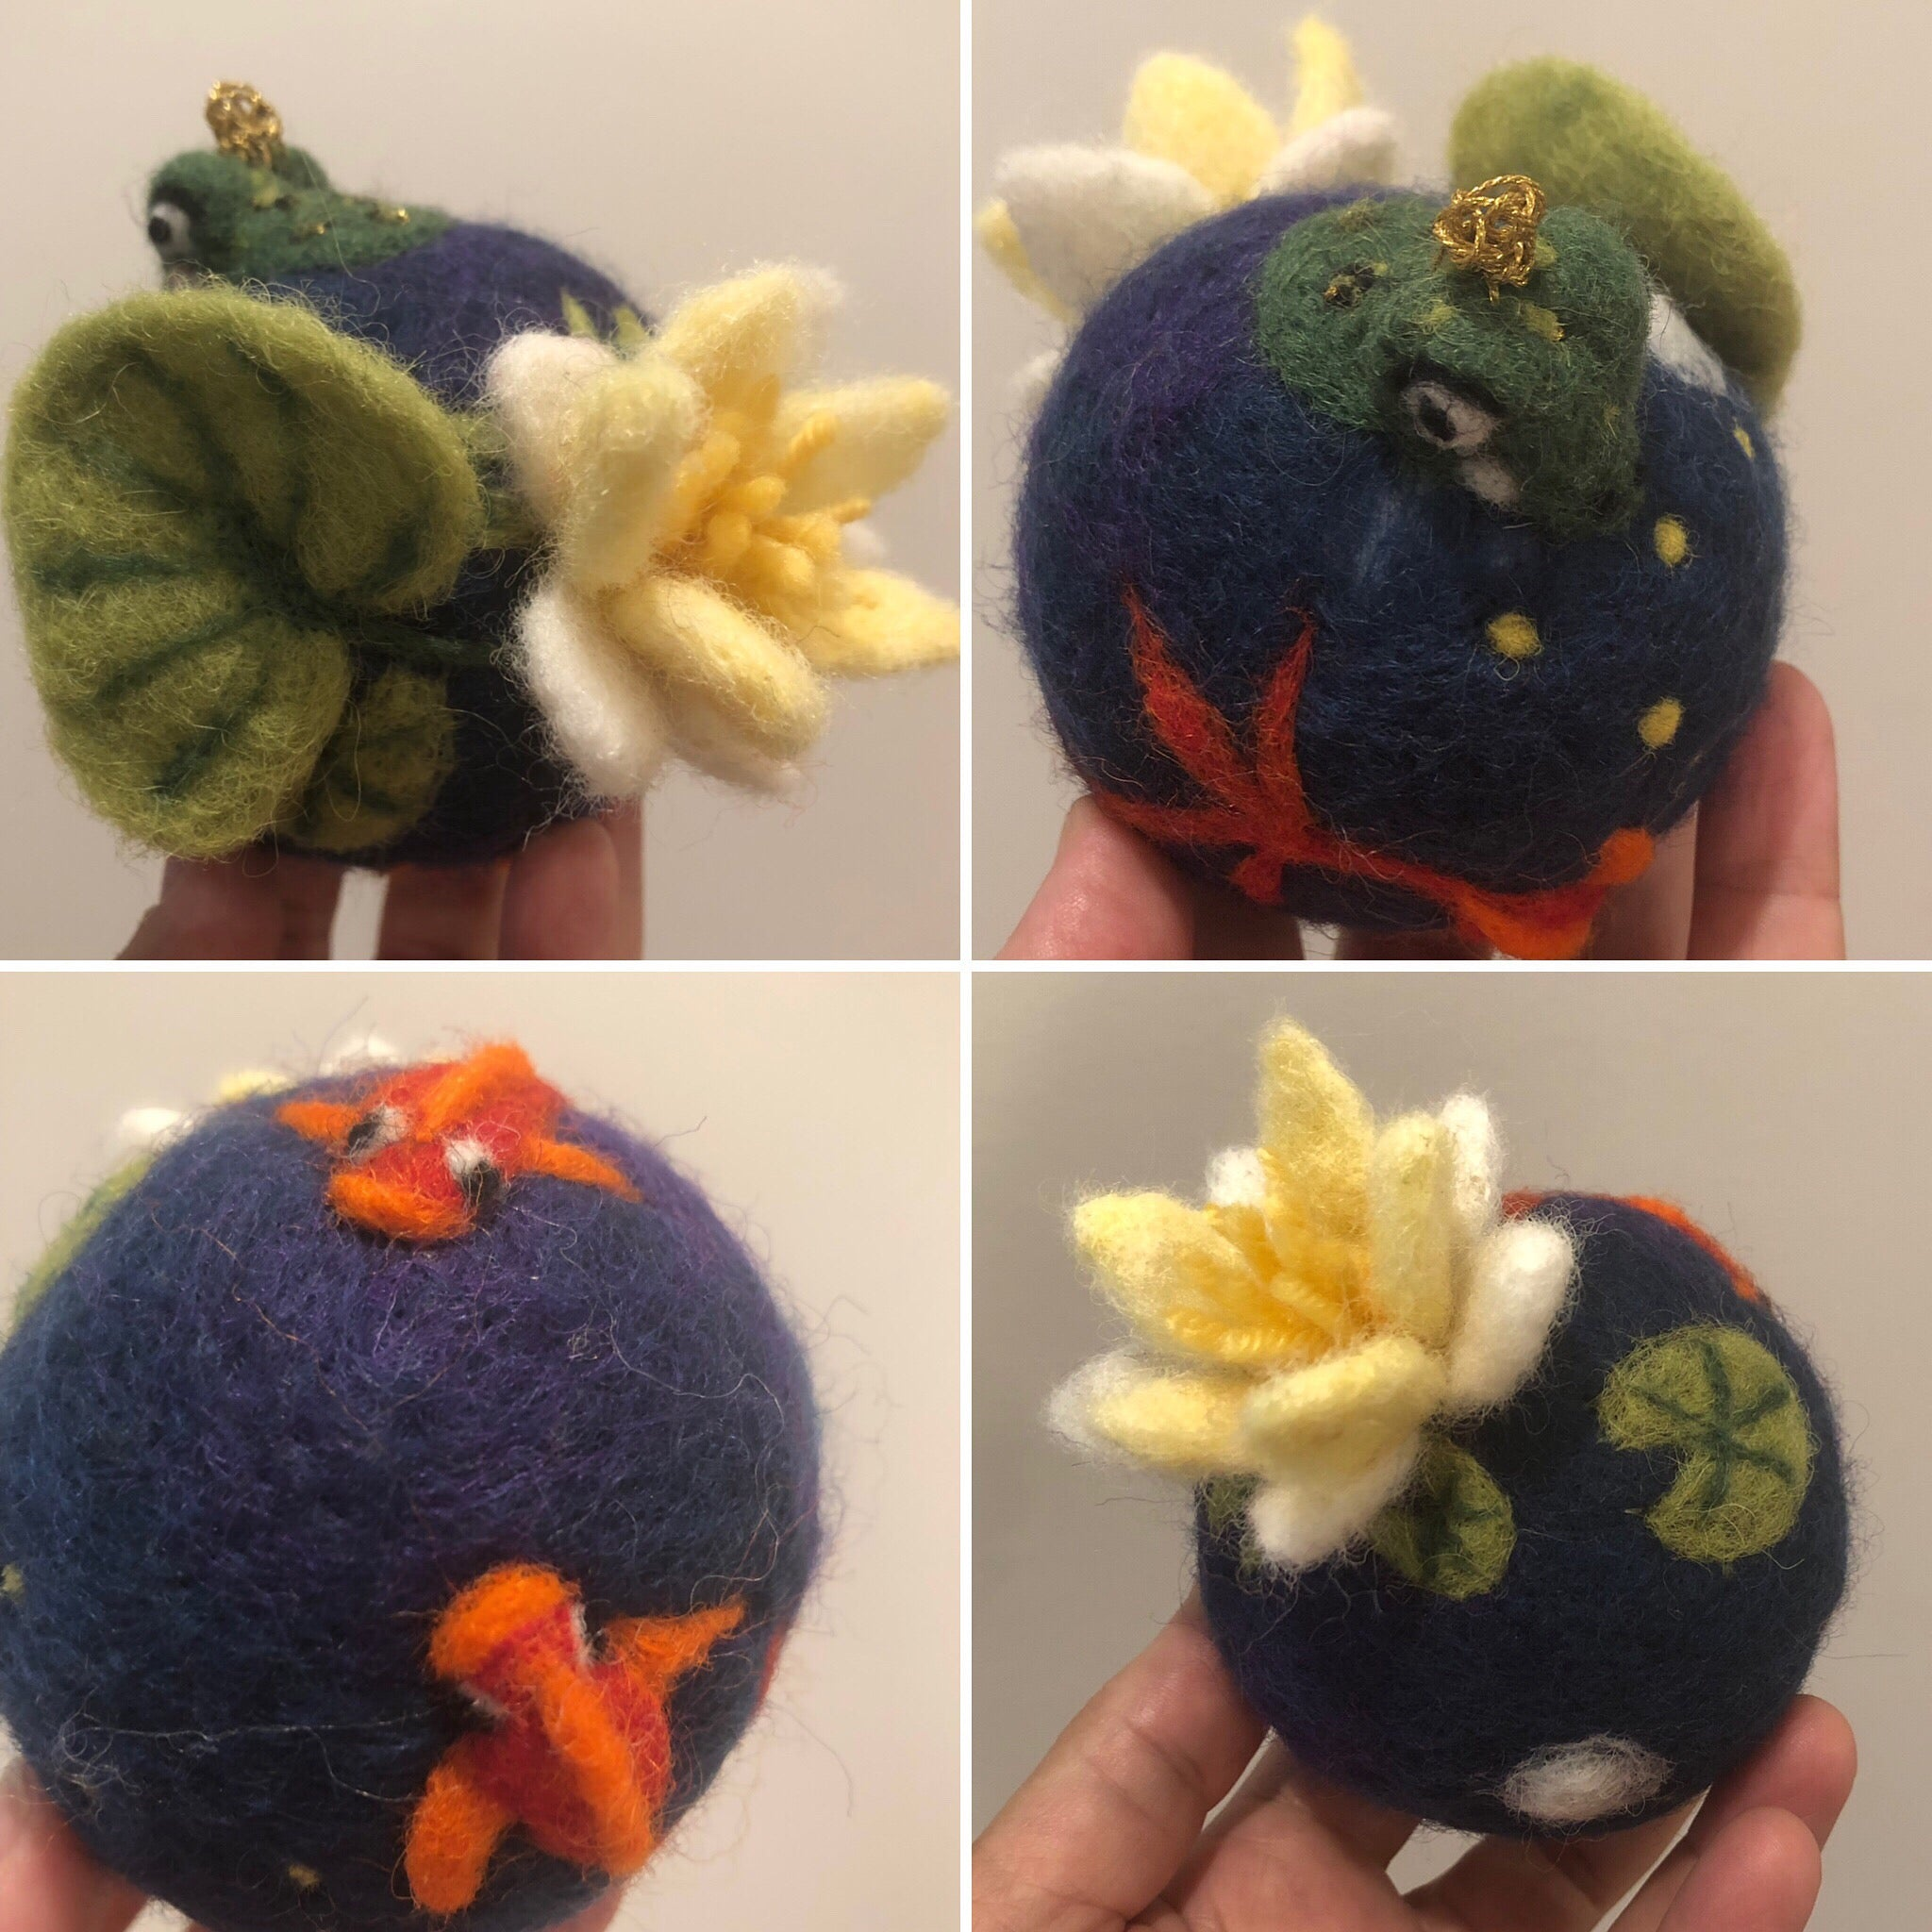 Little World, Small World, Tiny World, Wool World, Children, gift, baby nursery, felted, wall hanging, home decor, felted, wool, wool fiber, 3D felted. fiber art, art, handmade, hand felted, wet felted, needle felted, toy,